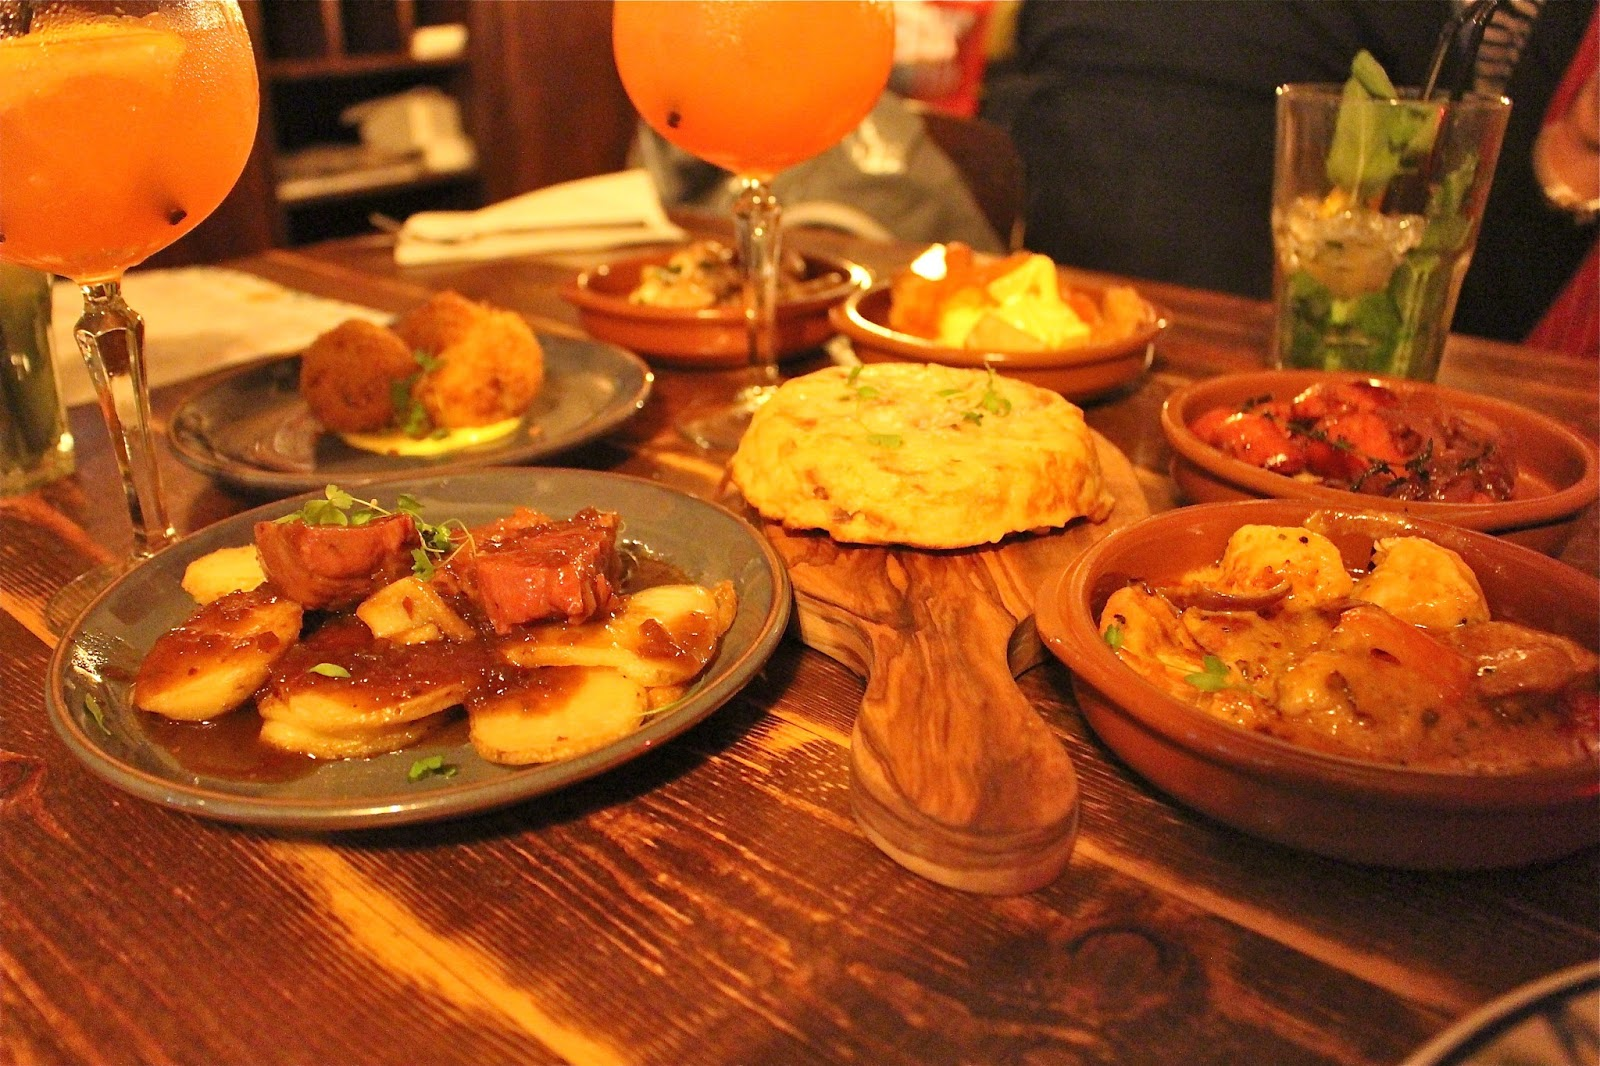 For cocktails and tapas at la tasca studded kisses